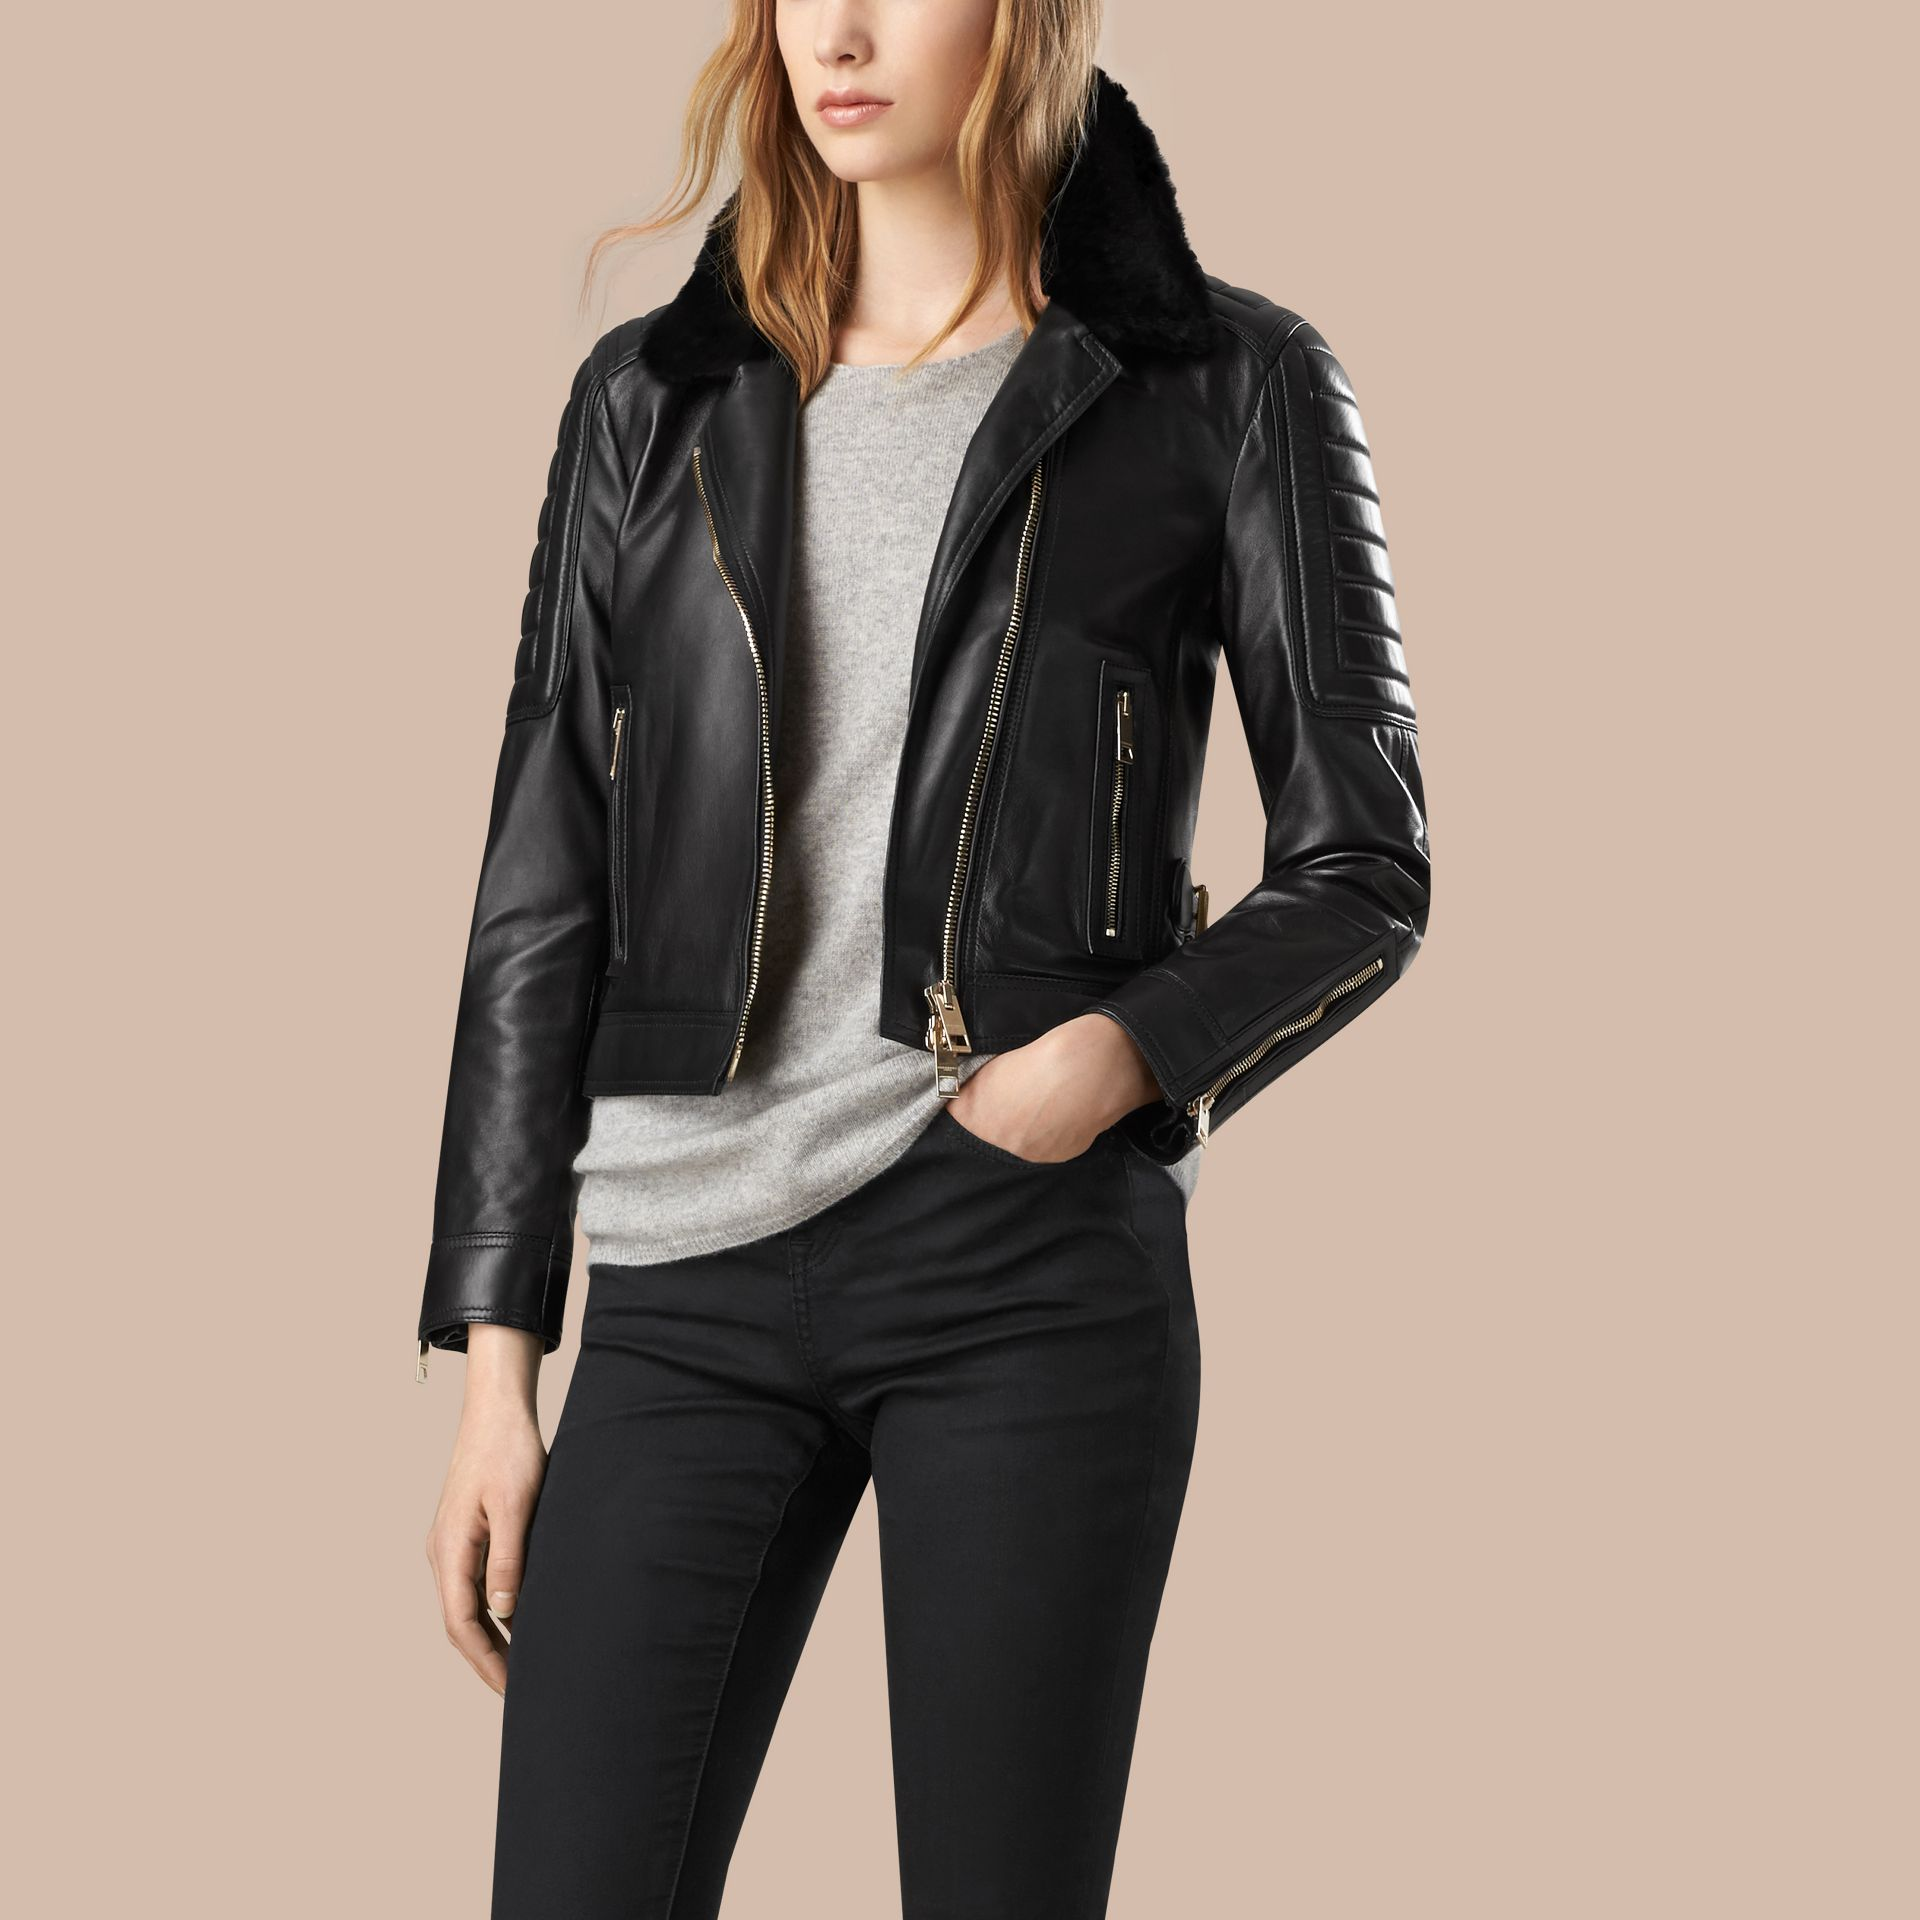 Black Lambskin Biker Jacket with Shearling Topcollar - gallery image 1